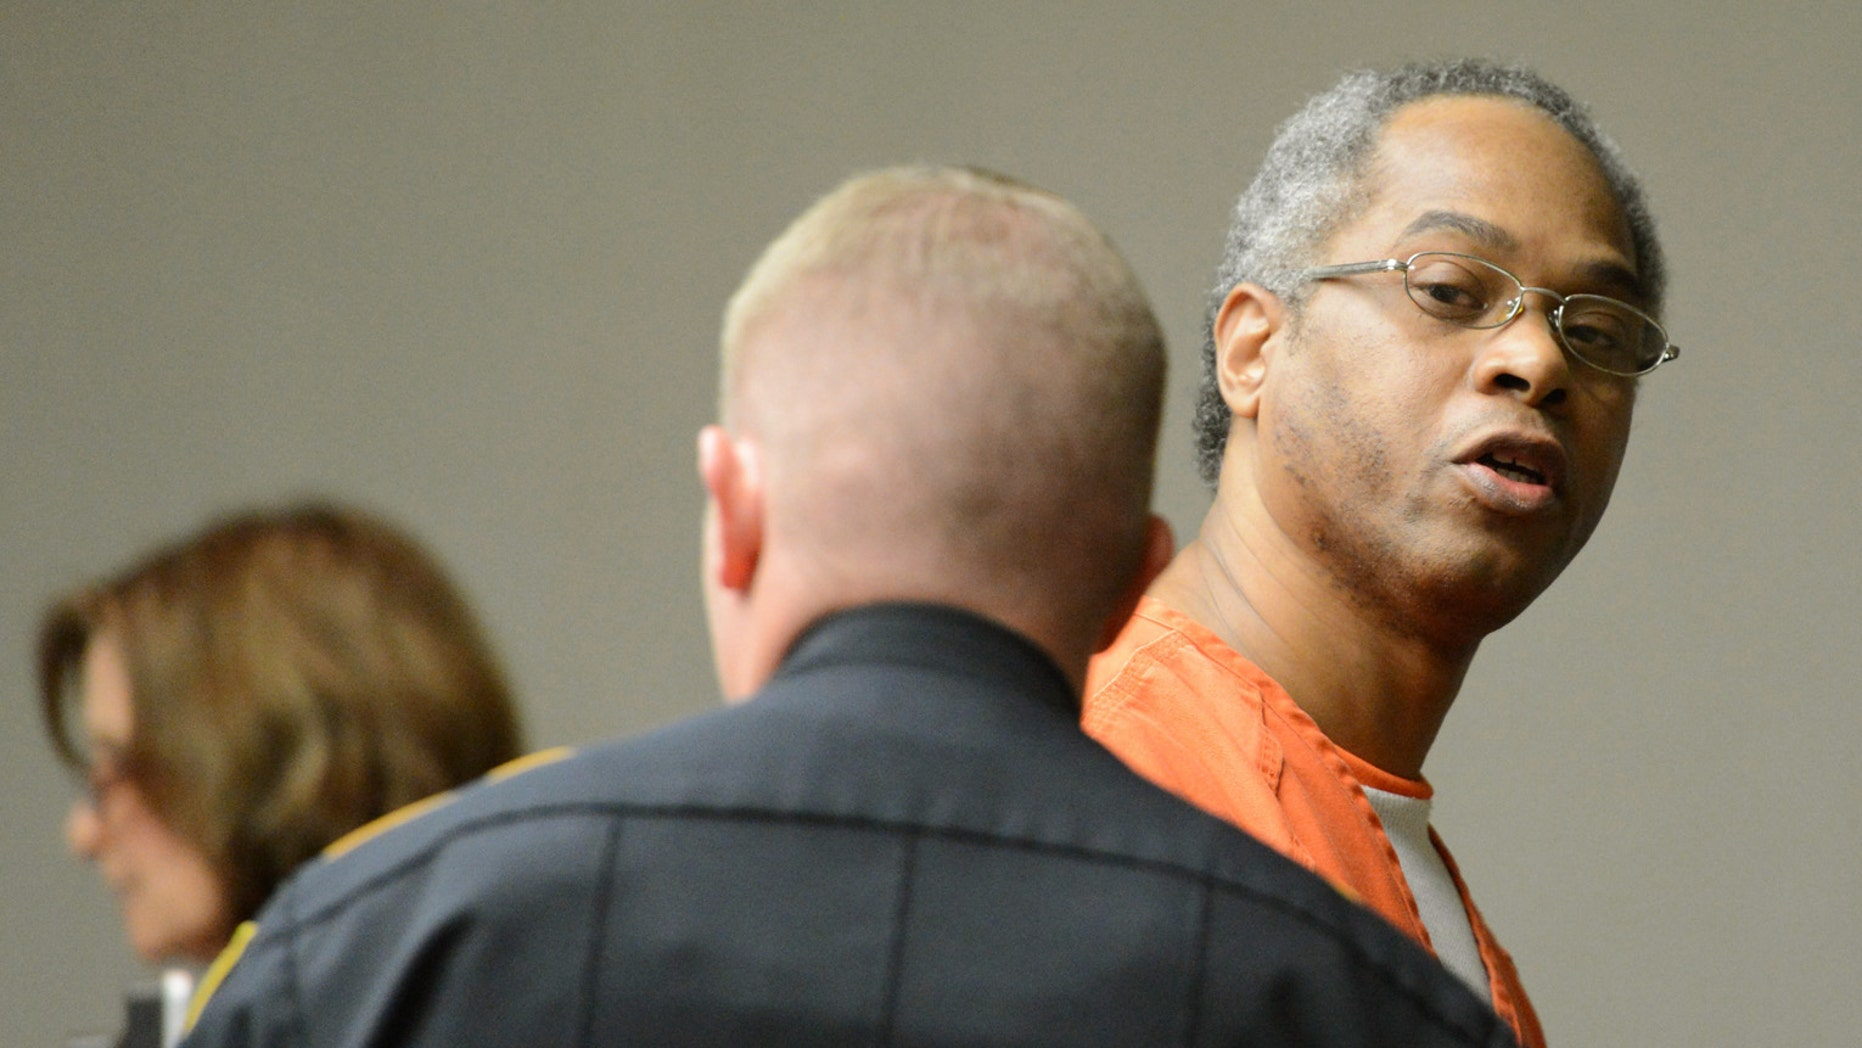 In this Nov. 15, 2012 photo, Carl Henry Blue looks back at family and friends while being escorted back to jail after having his execution date set at the Brazos County Courthouse in Bryan, Texas.  Blue never disputed filling a convenience store drink cup with gasoline, tossing it on his former girlfriend at the door of her apartment and setting her ablaze.  Nineteen days after the September 1994 incident, 38-year-old Carmen Richards-Sanders died of her burns.  Now, more than 18 years later, Blue, 48, is set to die Thursday, Feb. 21, 2013,  evening for what he contended was a prank gone bad and for what prosecutors successfully argued was capital murder.  Blue's execution would be the first this year in Texas, the nation's most active death penalty state. Fifteen inmates were executed last year. Blue is among at least 12 Texas prisoners scheduled for lethal injection in the coming months.   (AP Photo/Bryan-College Station Eagle, Dave McDerman)